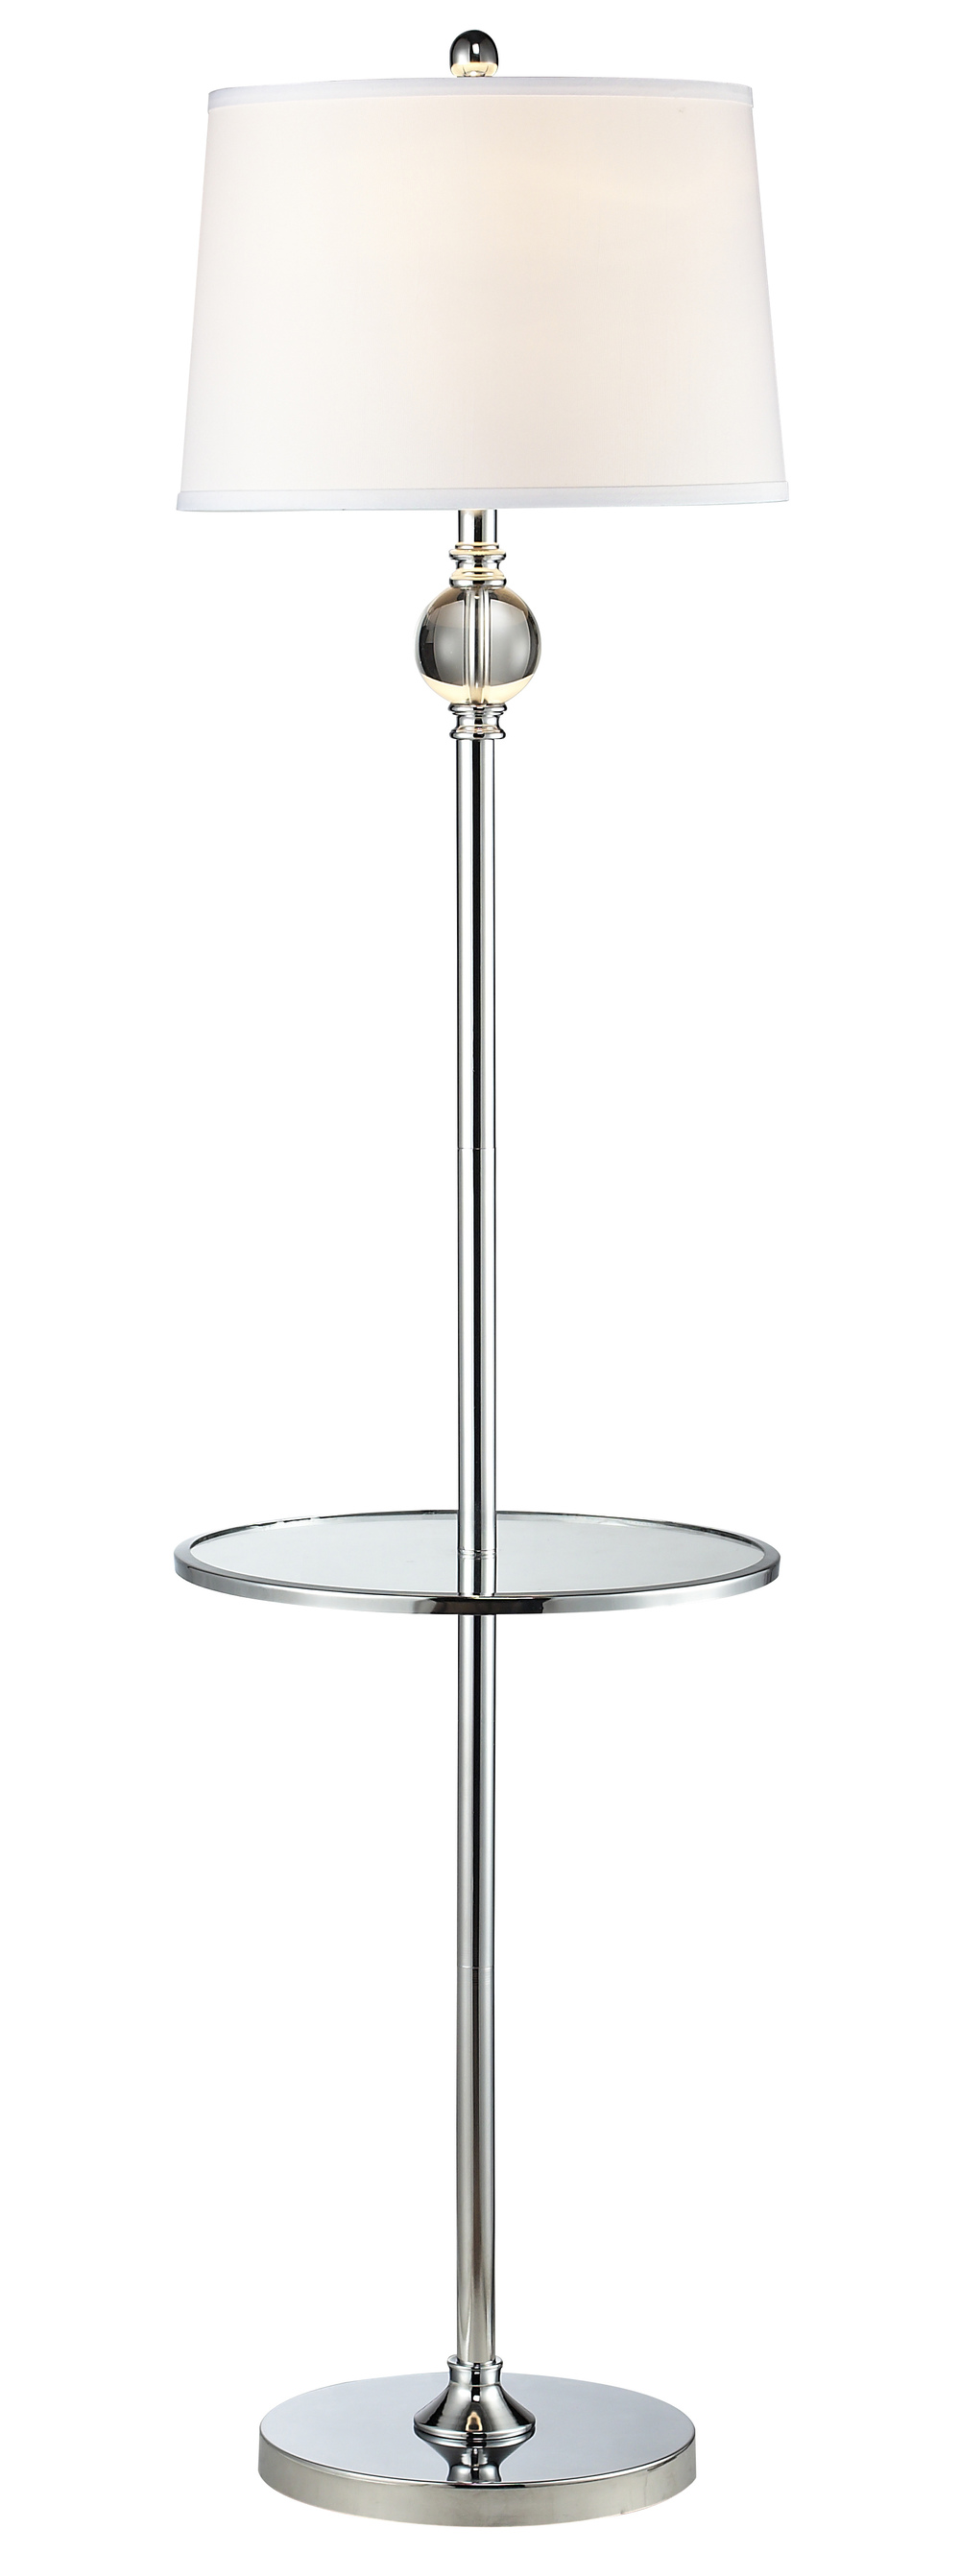 20006 PISA FLOOR LAMP